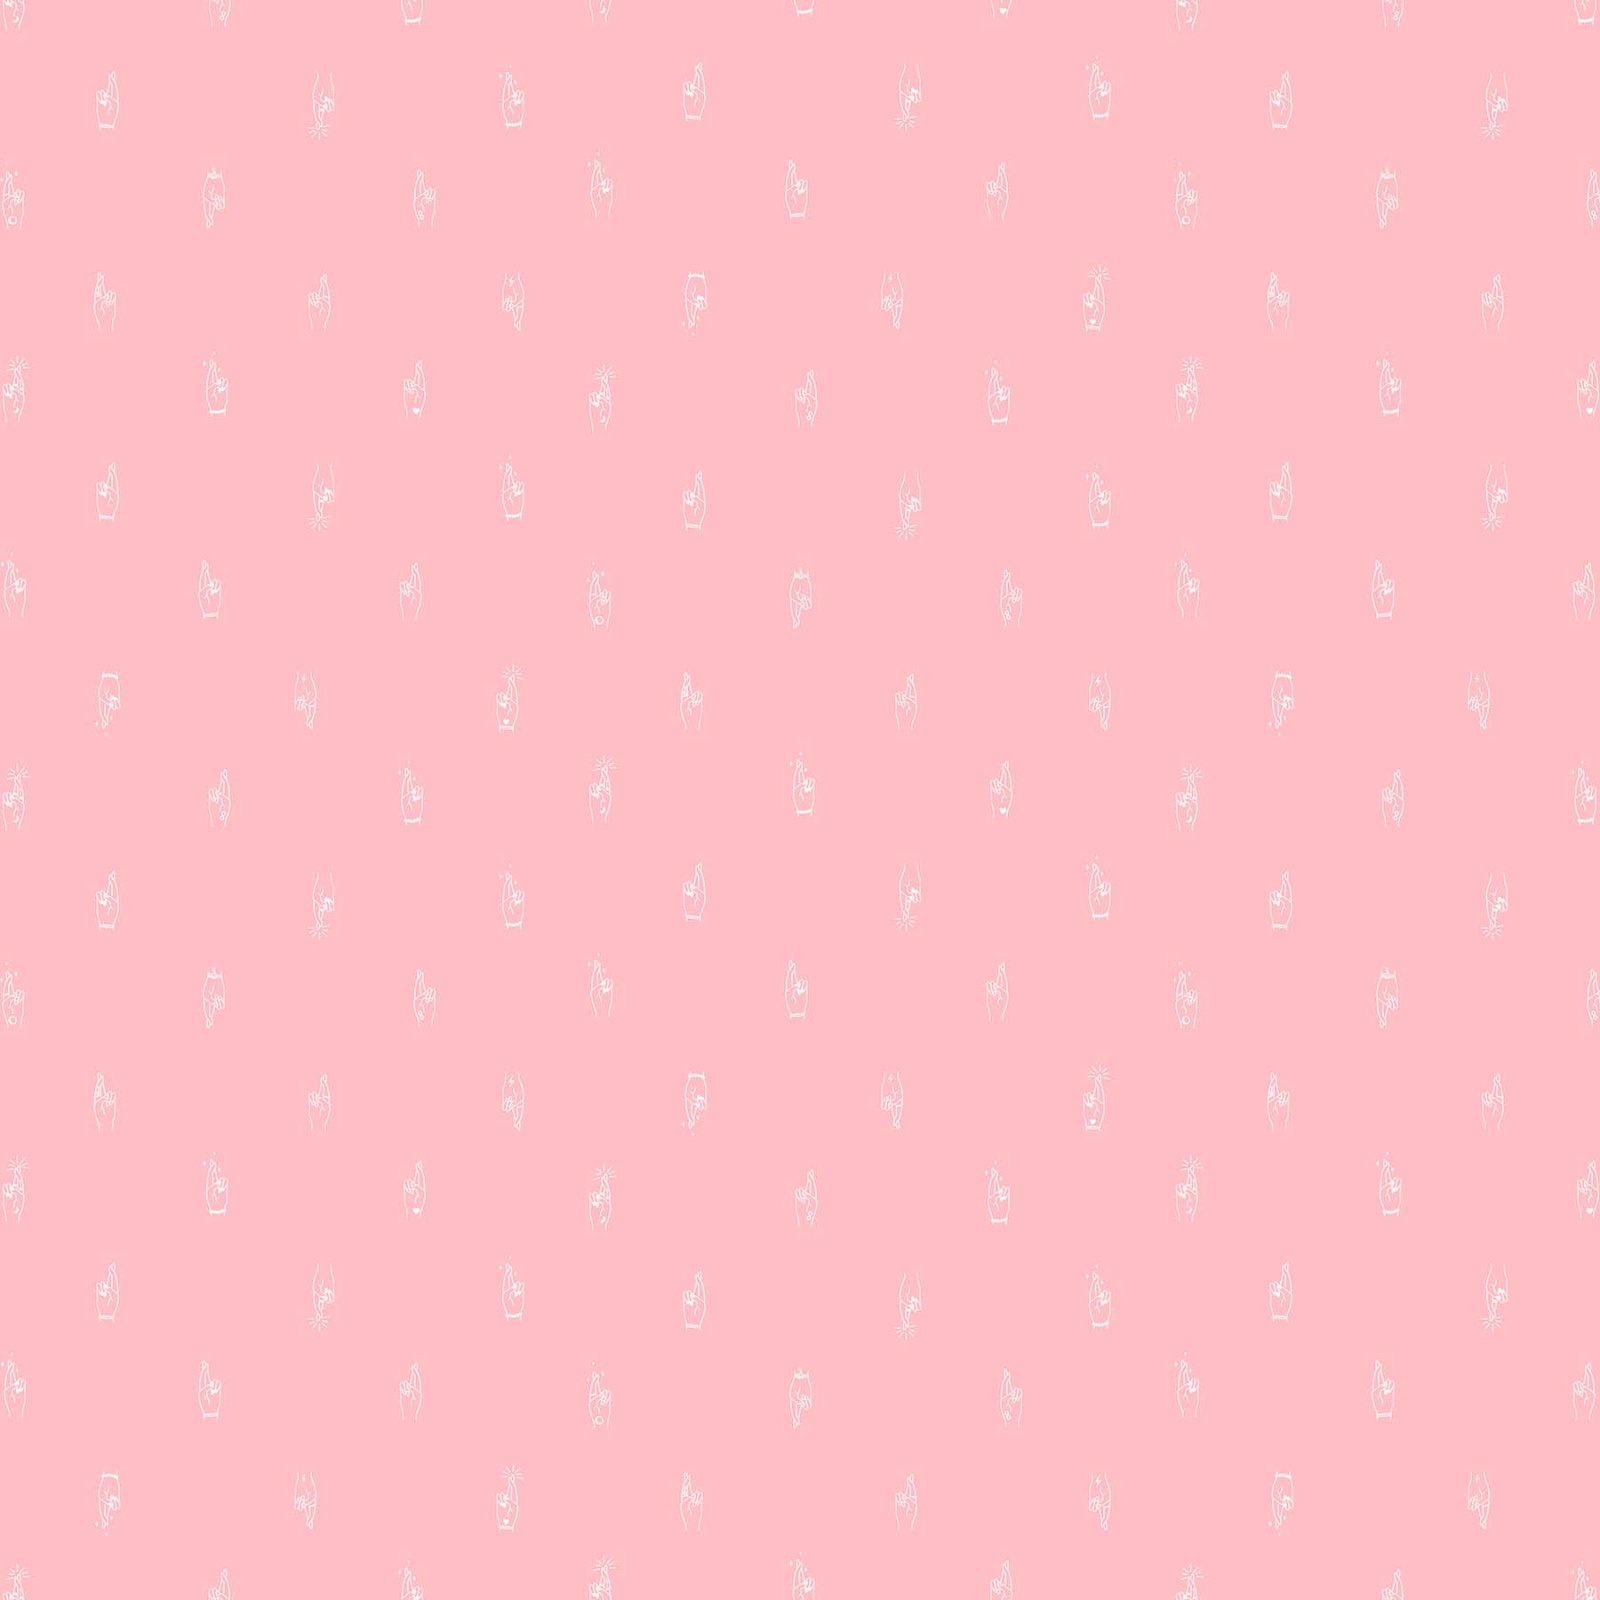 Lucky Charms Basics by Figo 92001 21 Pink Crossed Fingers